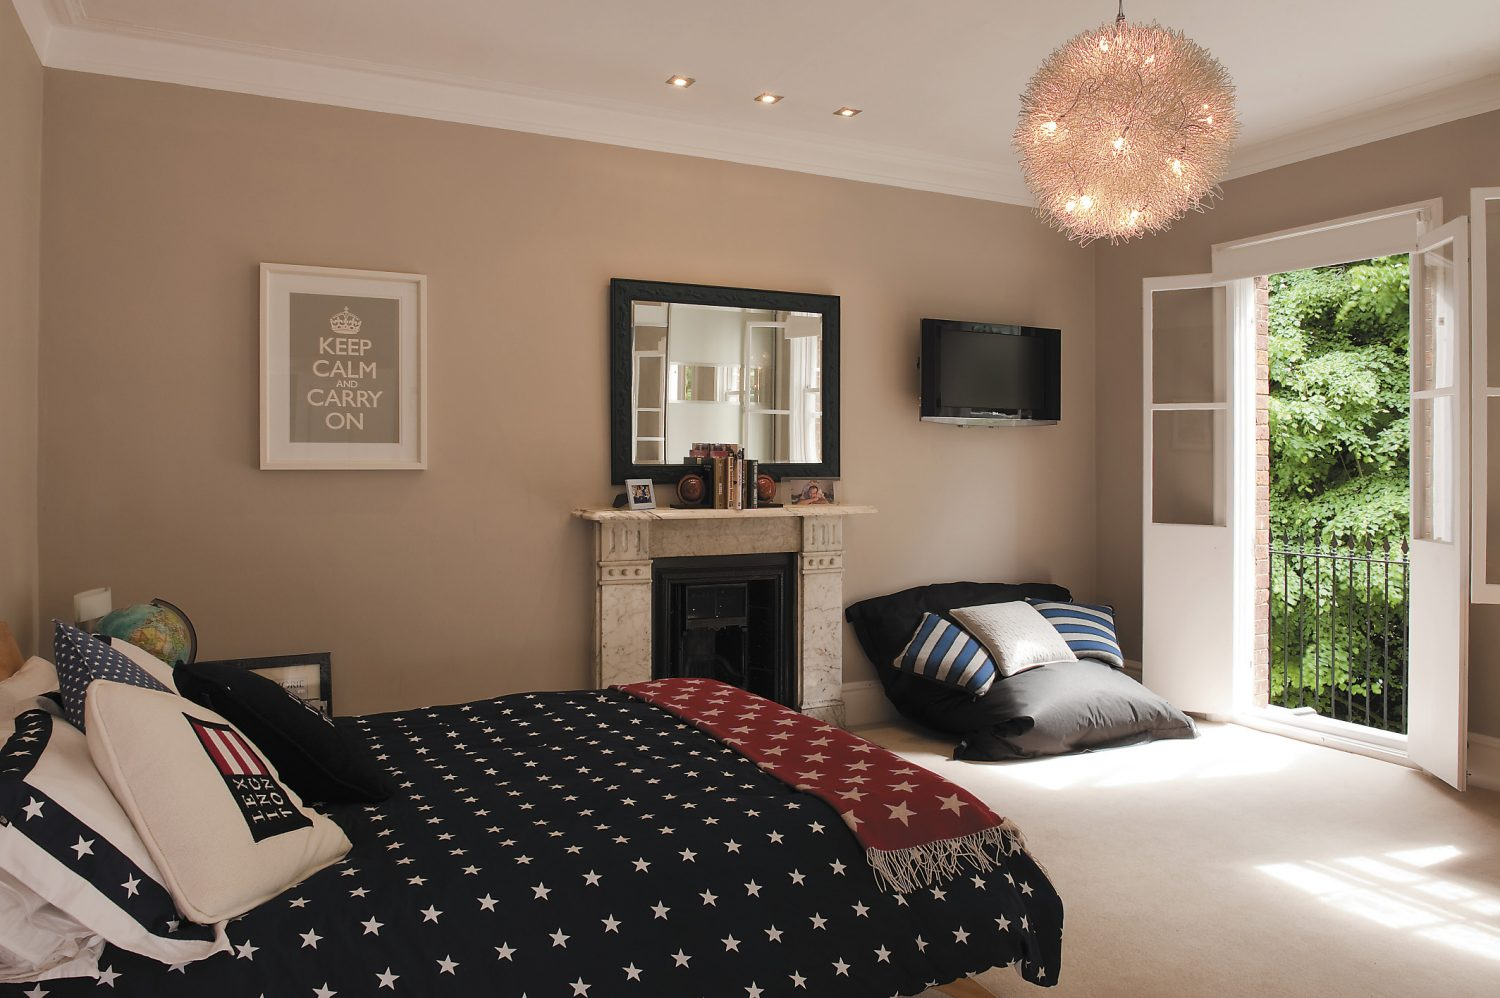 Henrys room is a Gant-fest complete with stars and stripes bedspread. Lighting is by both downlighters – elegant square chrome as elsewhere in the house – and a great fun pendant which looks like nothing so much as a great ball of candy floss being eaten by glowworms